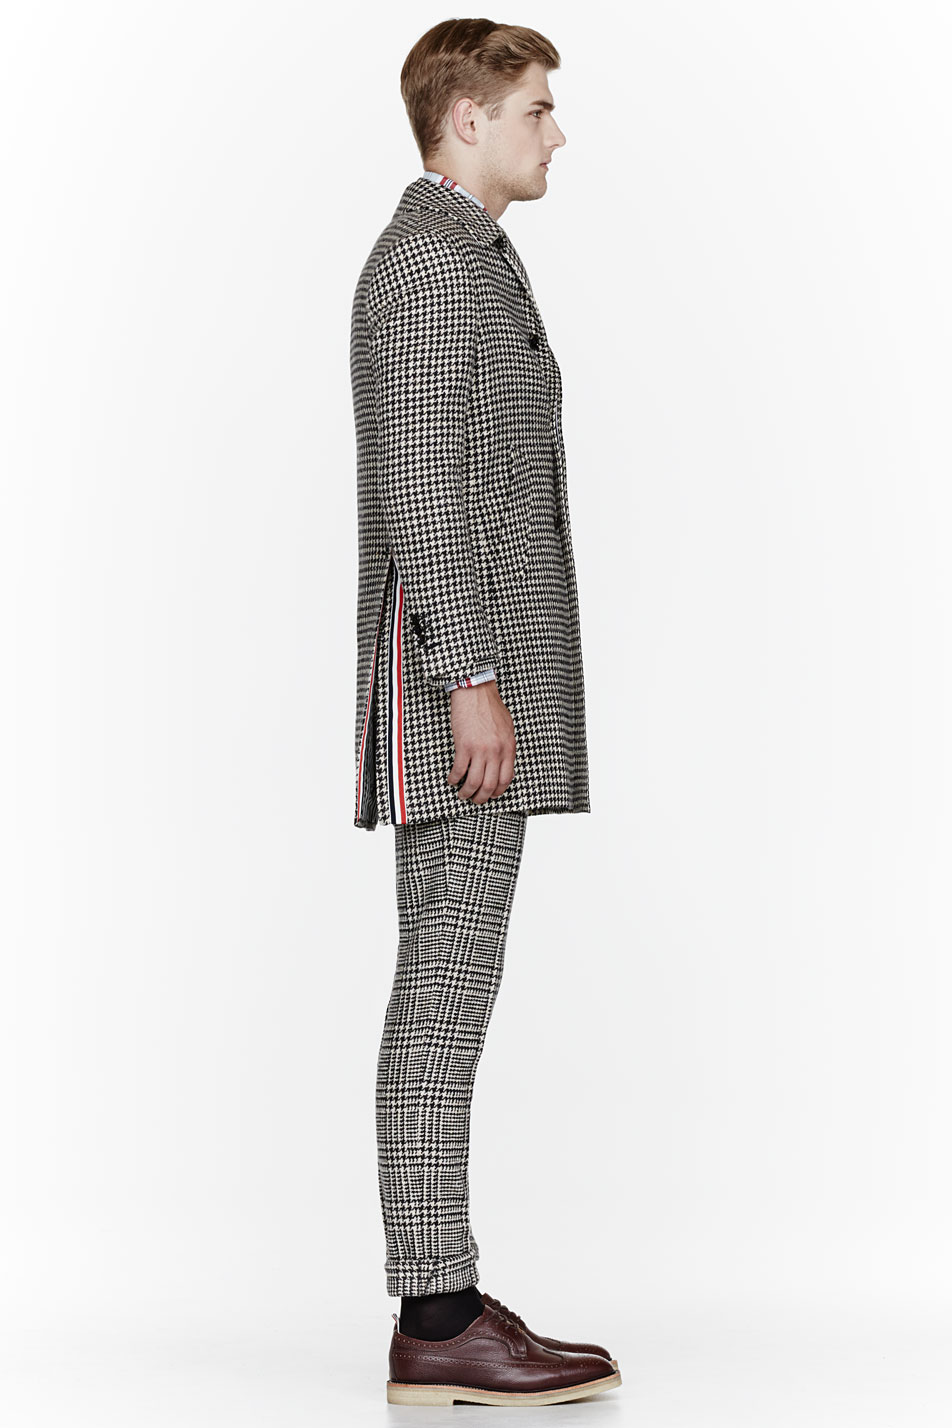 Glen Plaid Suit x Herringbone Coat Thom Browne 4